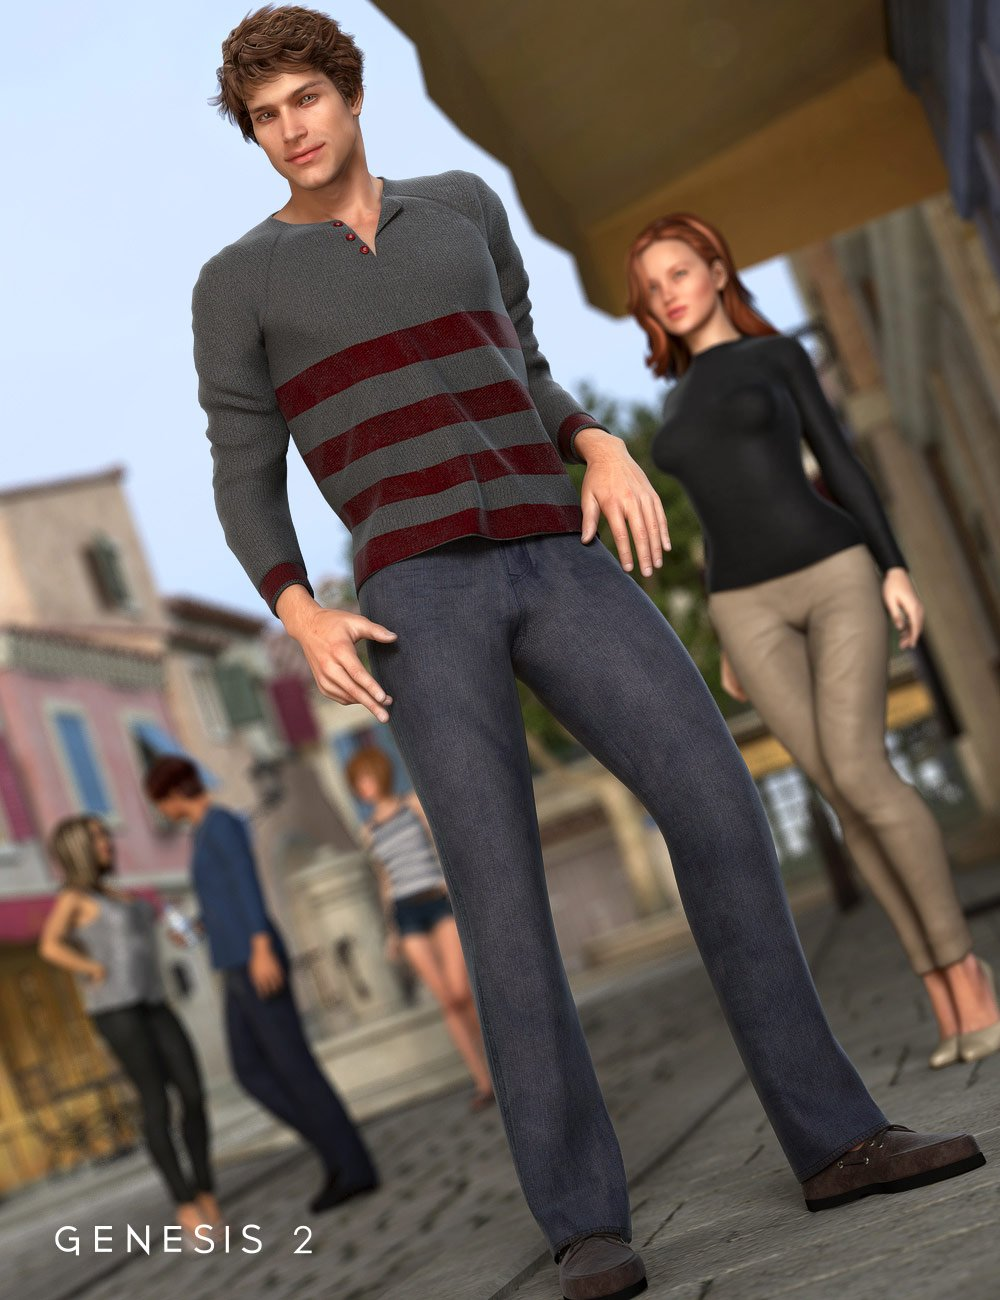 Newport Outfit for Genesis 2 Male(s) by: MadaSarsa, 3D Models by Daz 3D